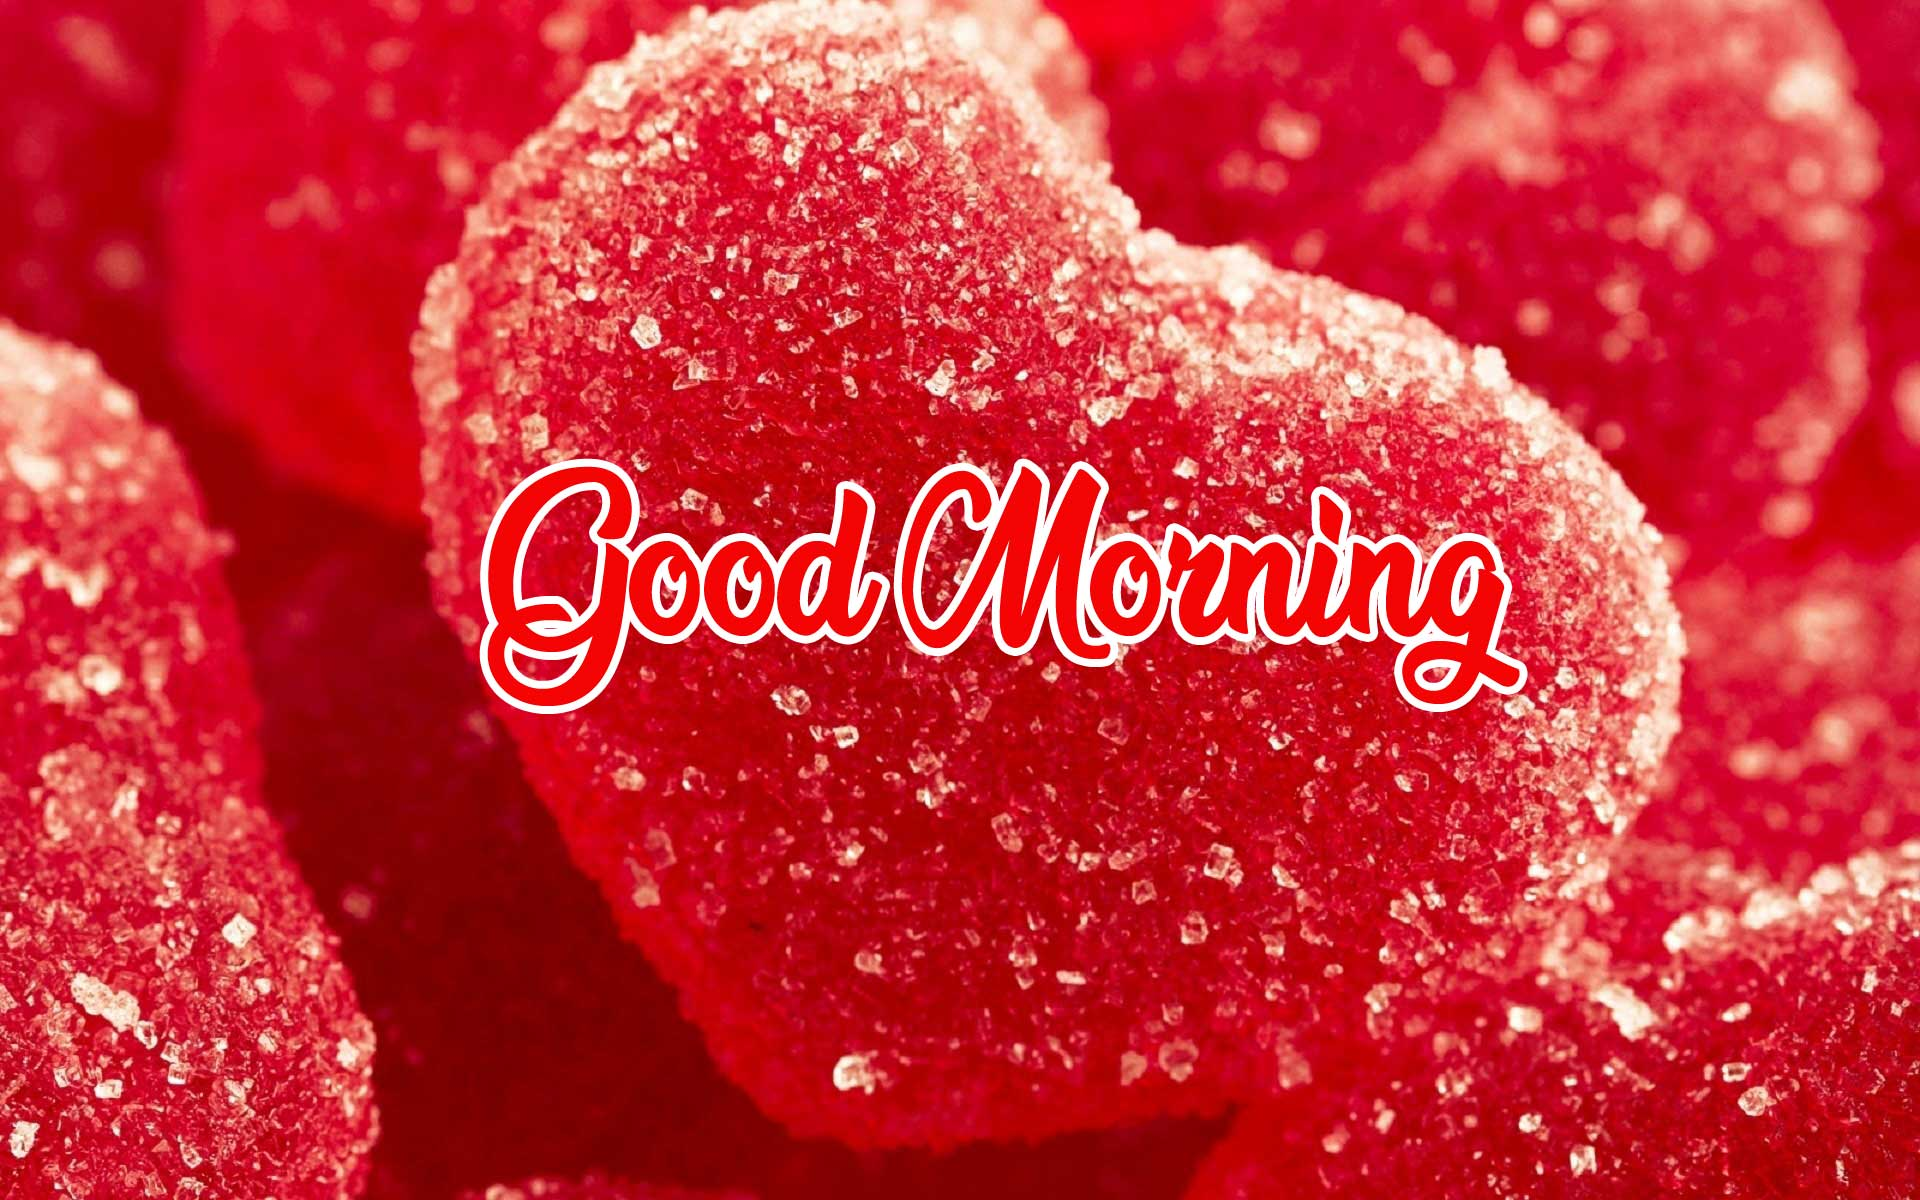 Dil Good Morning Images Pics Download With Red Rose free